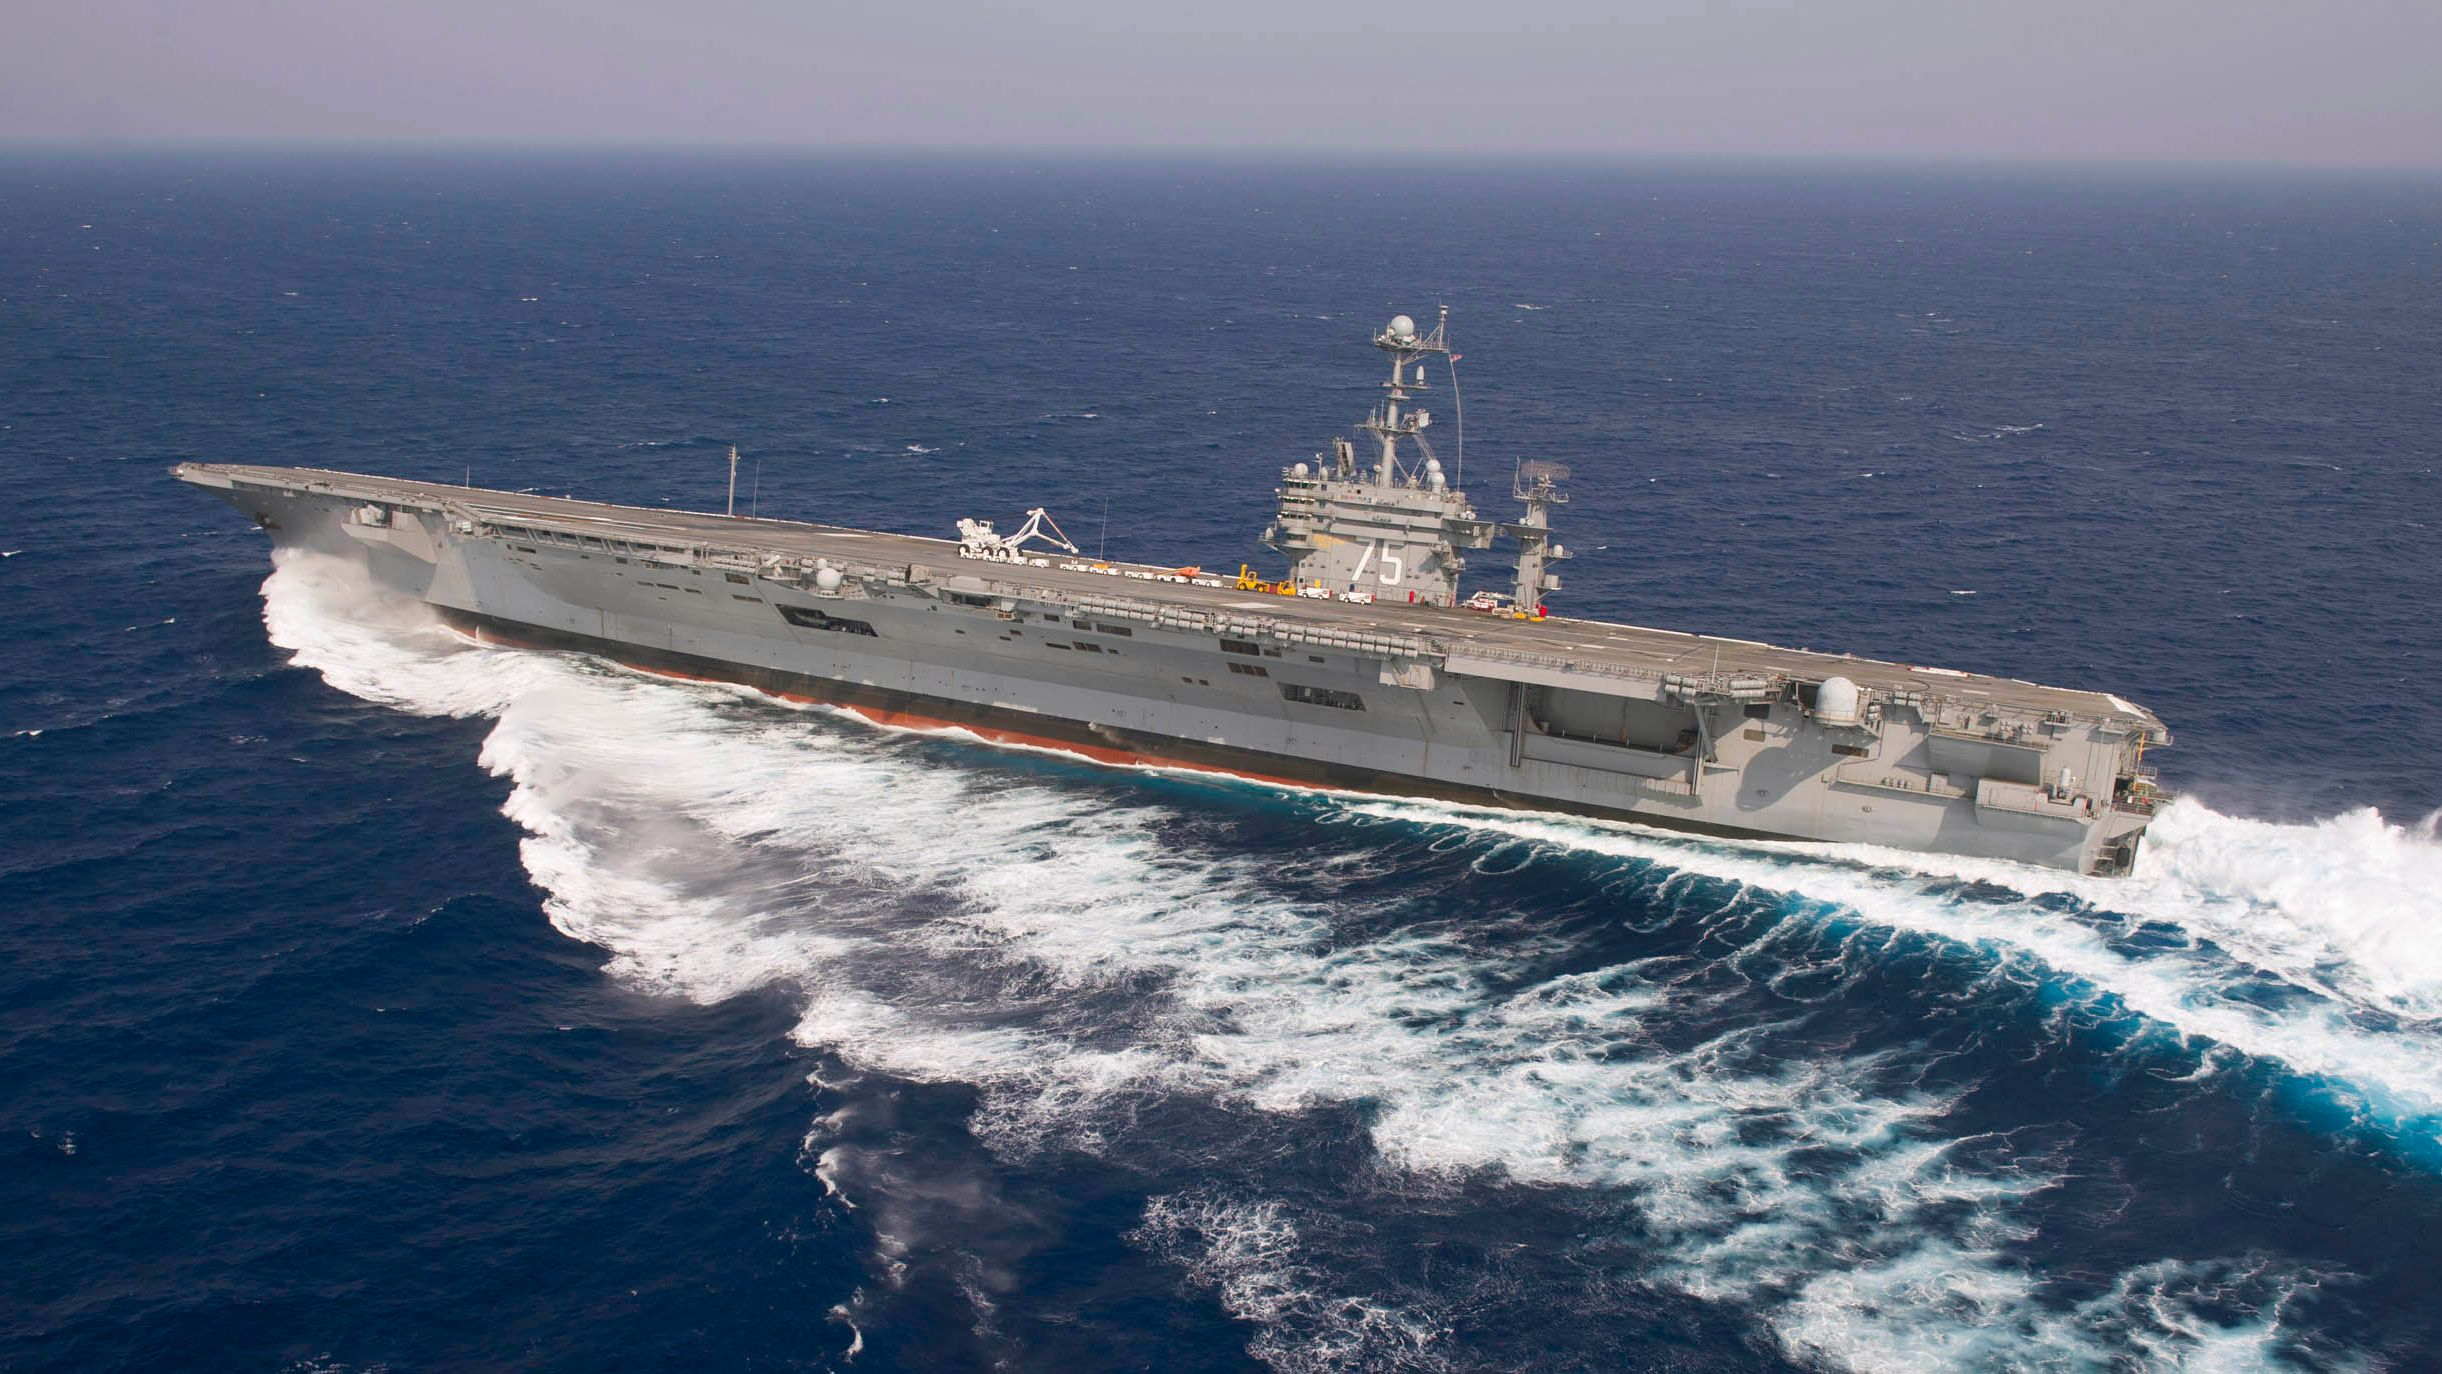 stunning image of us navy nuclear supercarrier skidding like crazy